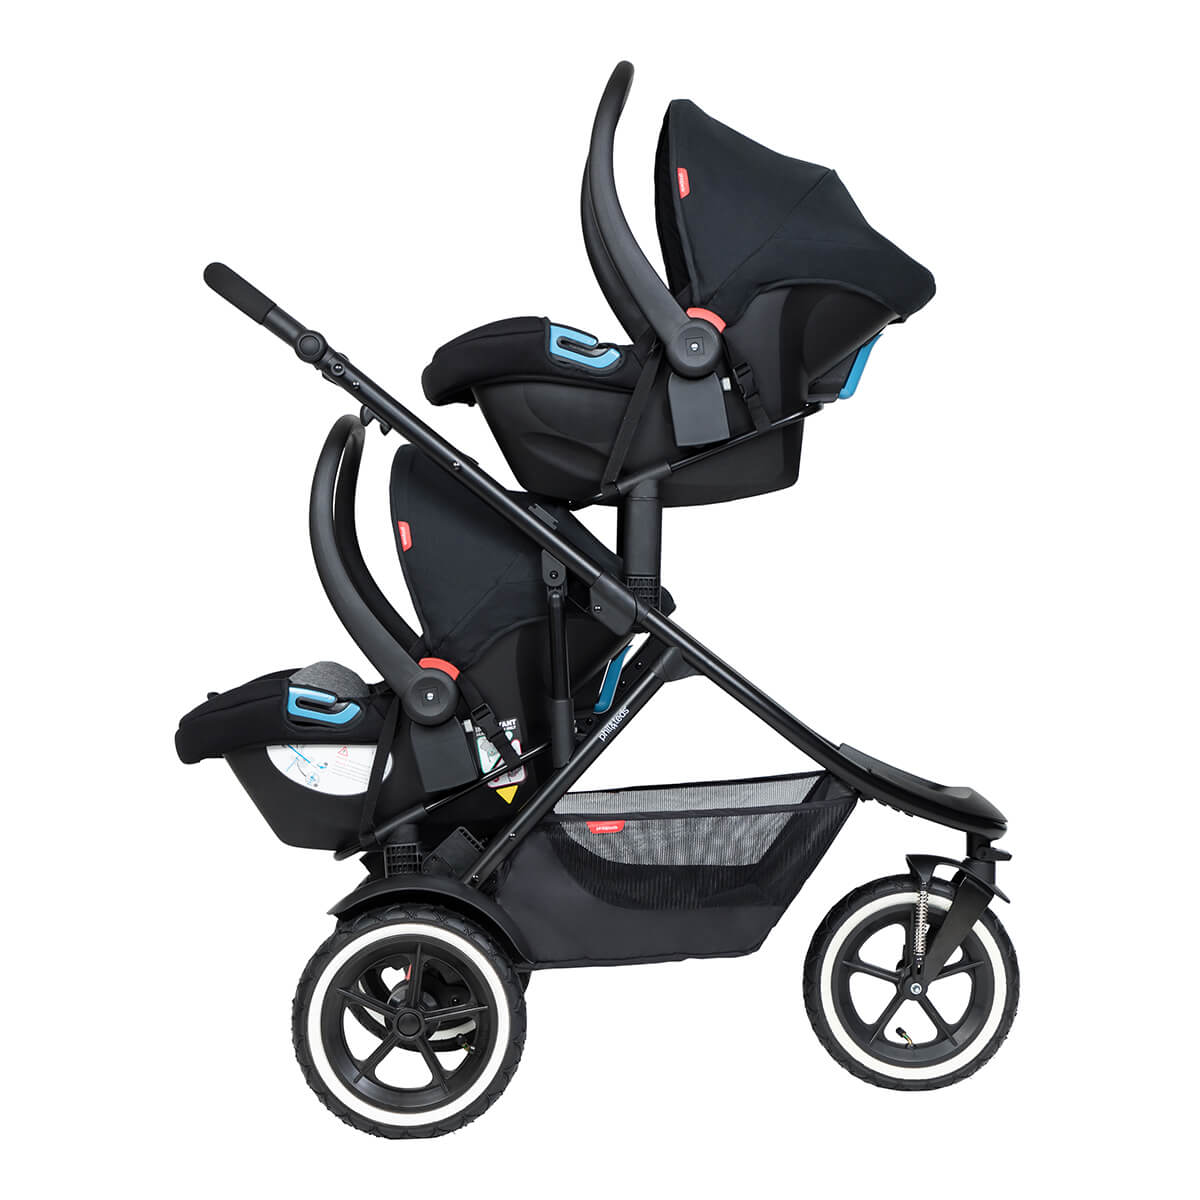 https://cdn.accentuate.io/4394651156568/19272668414040/philteds-sport-buggy-with-double-alpha-travel-system-v1626484293096.jpg?1200x1200